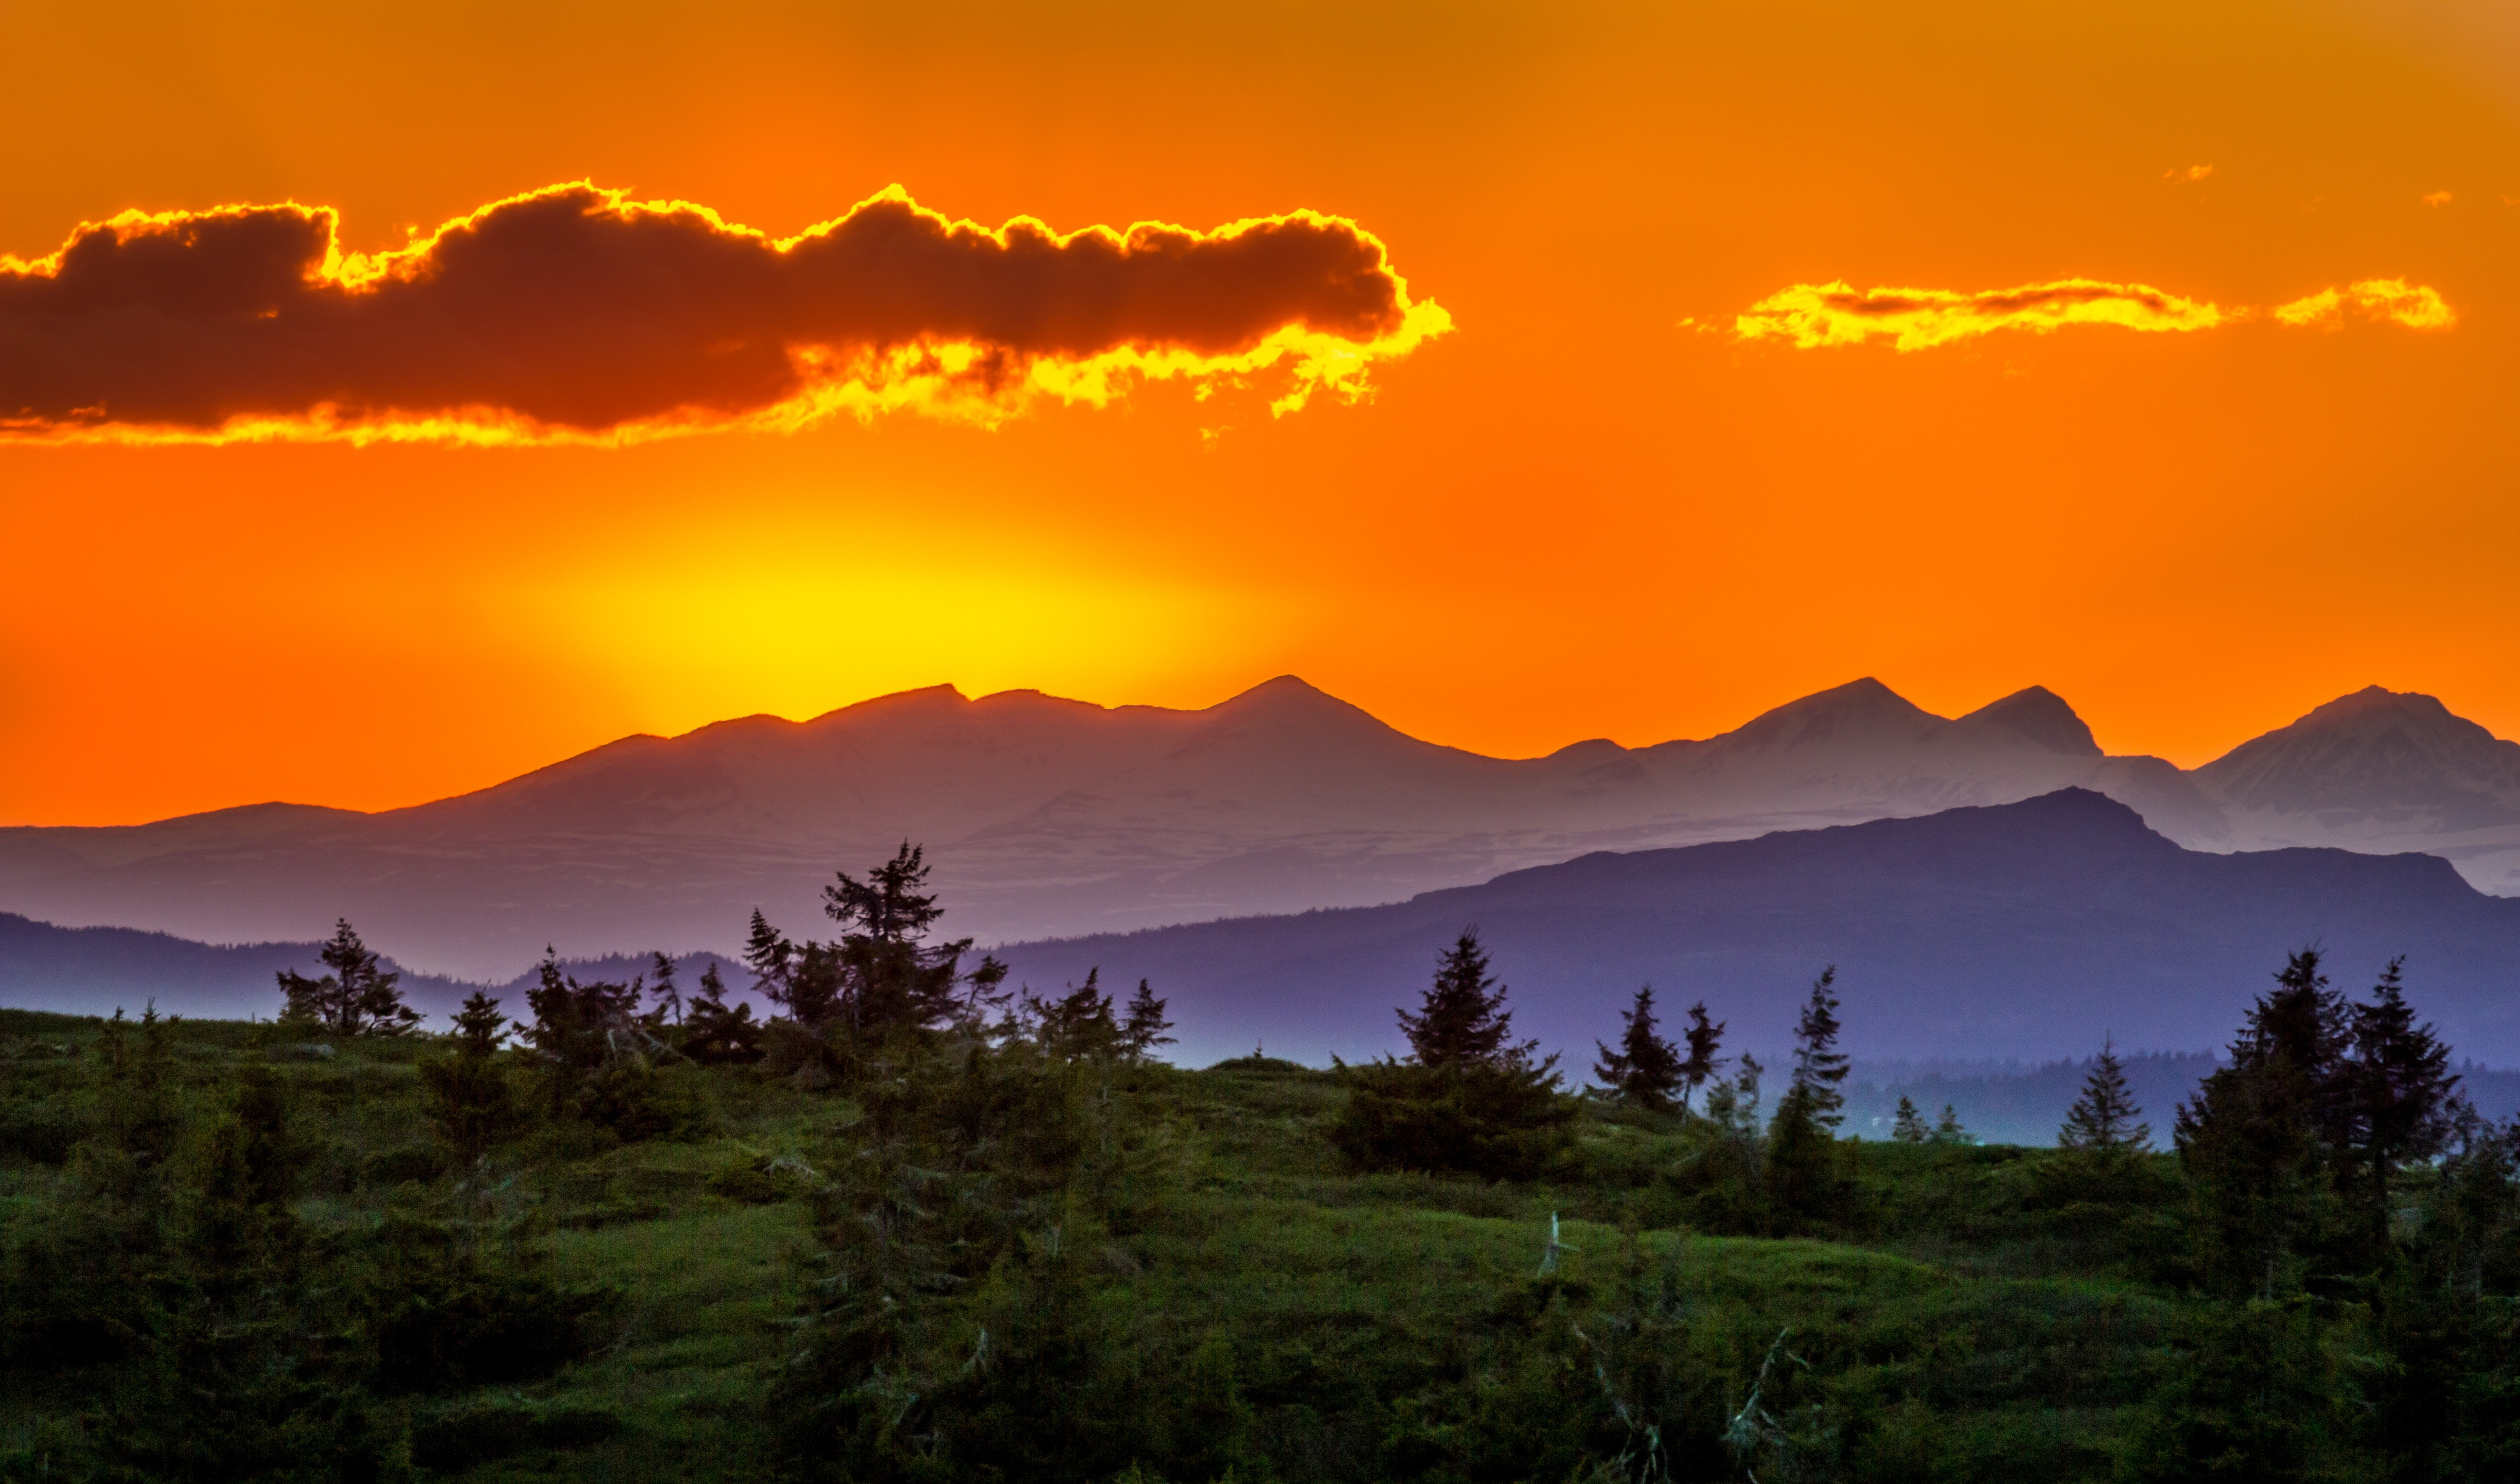 Scenic View of Mountains Against Sky at Sunset, Background, Mountain, Water, Trees, HQ Photo